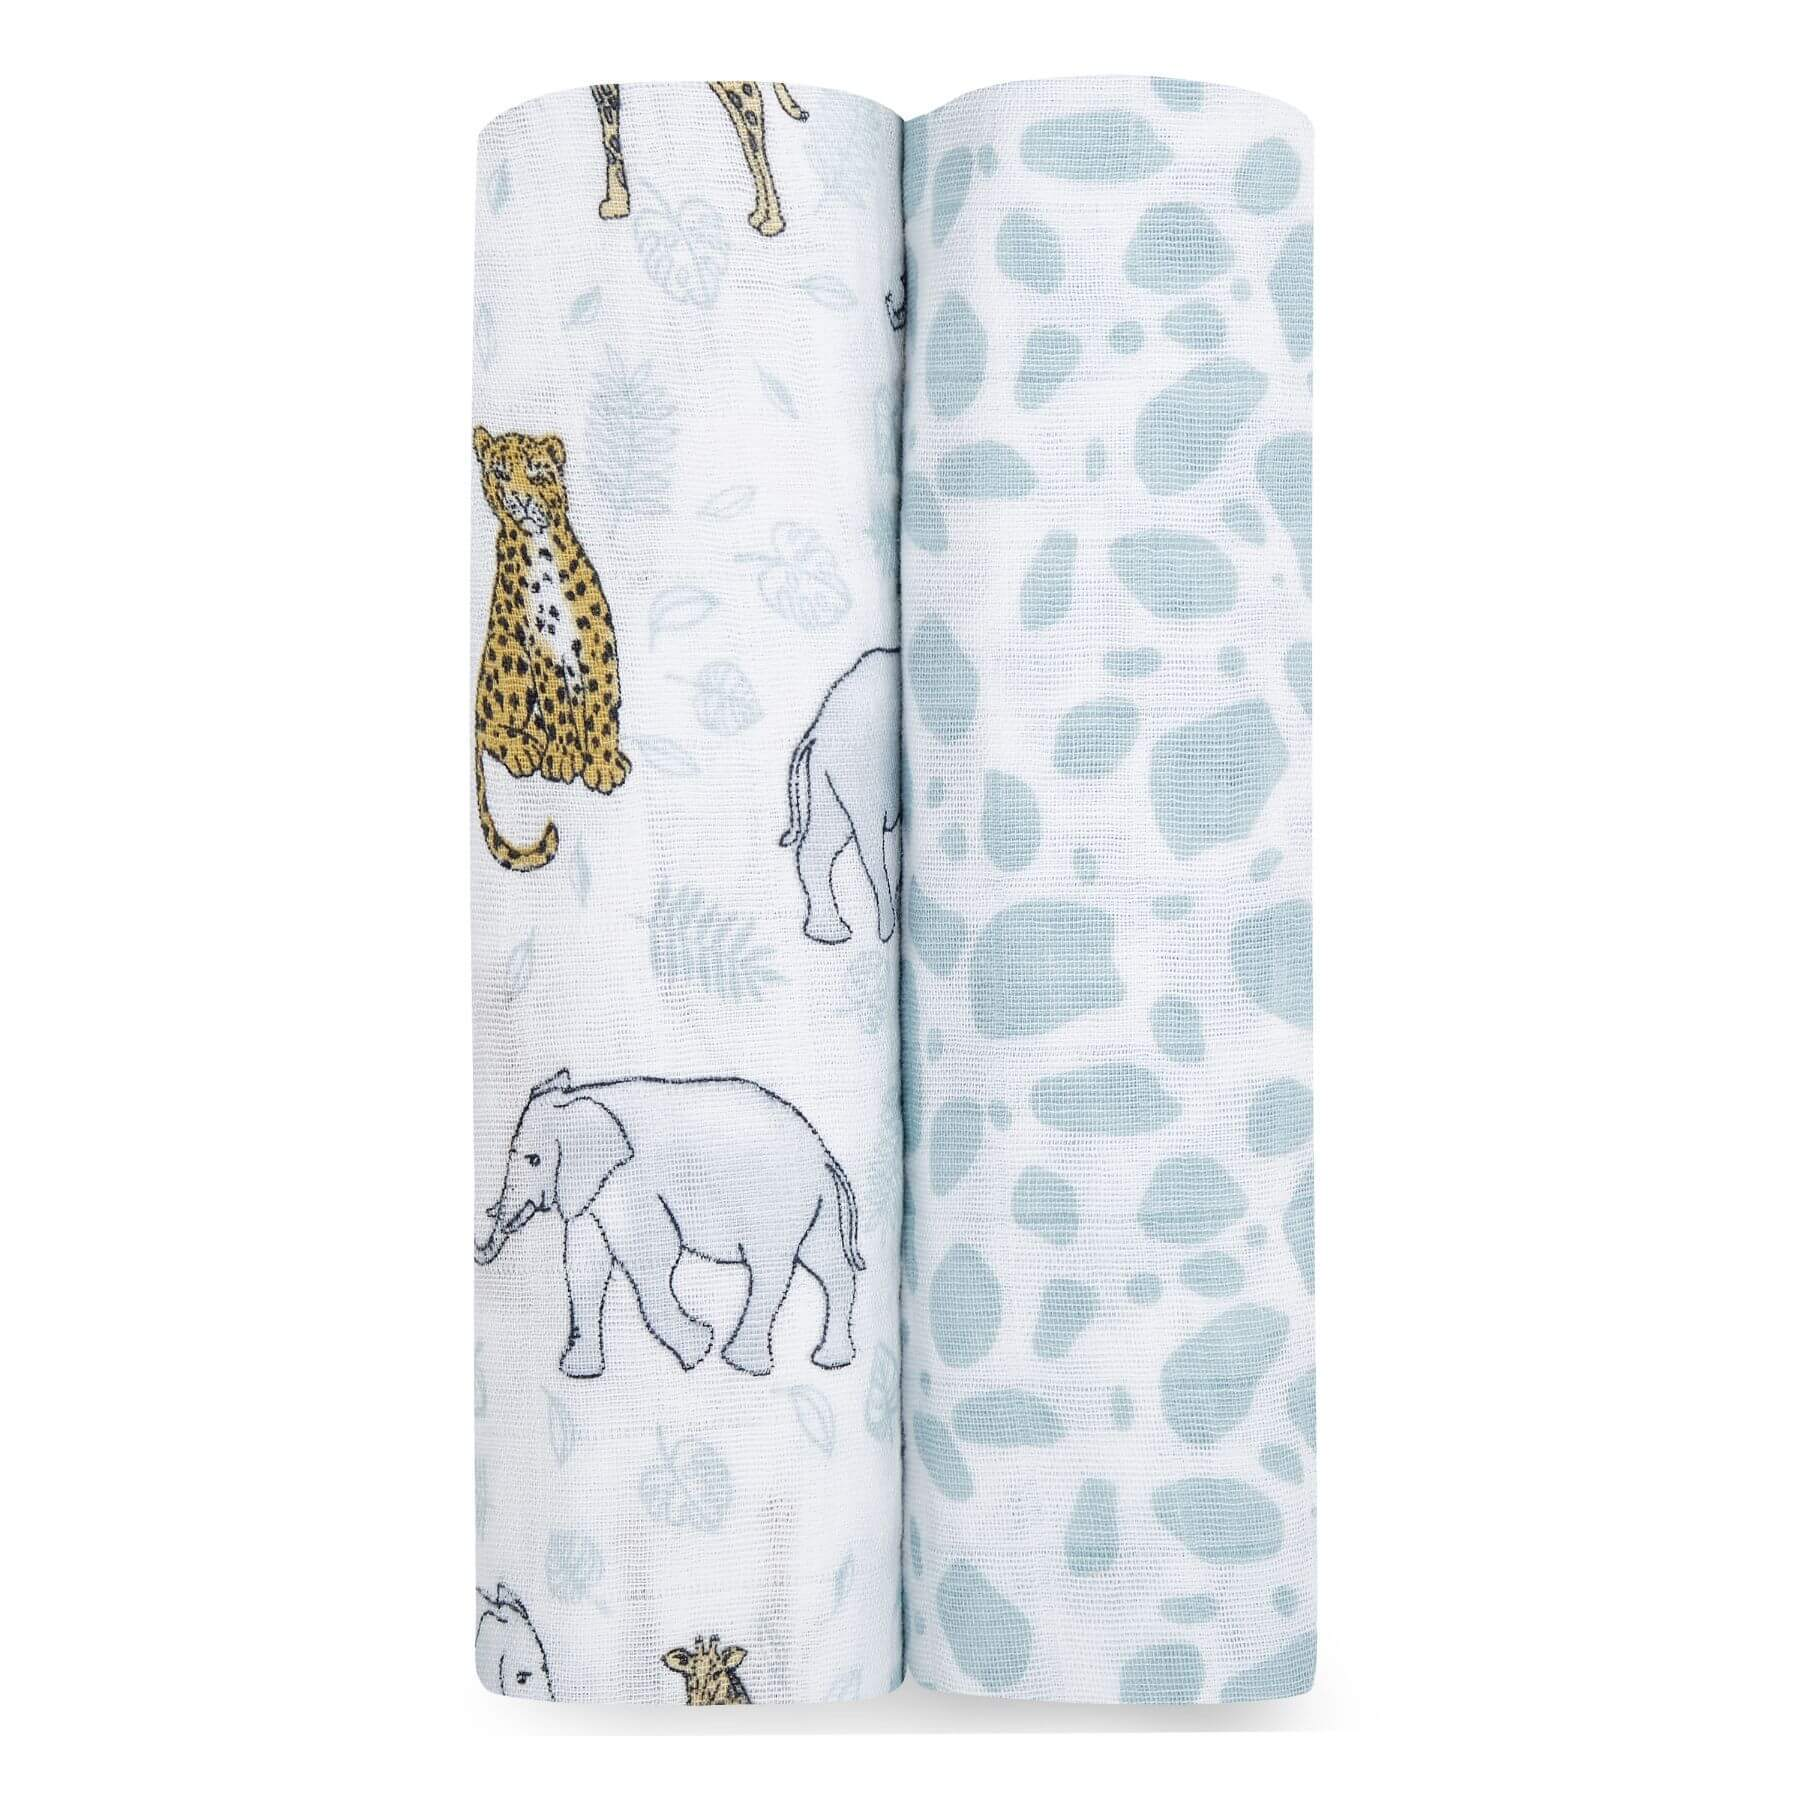 Aden & Anais 2 Pack Swaddle Wraps - Jungle